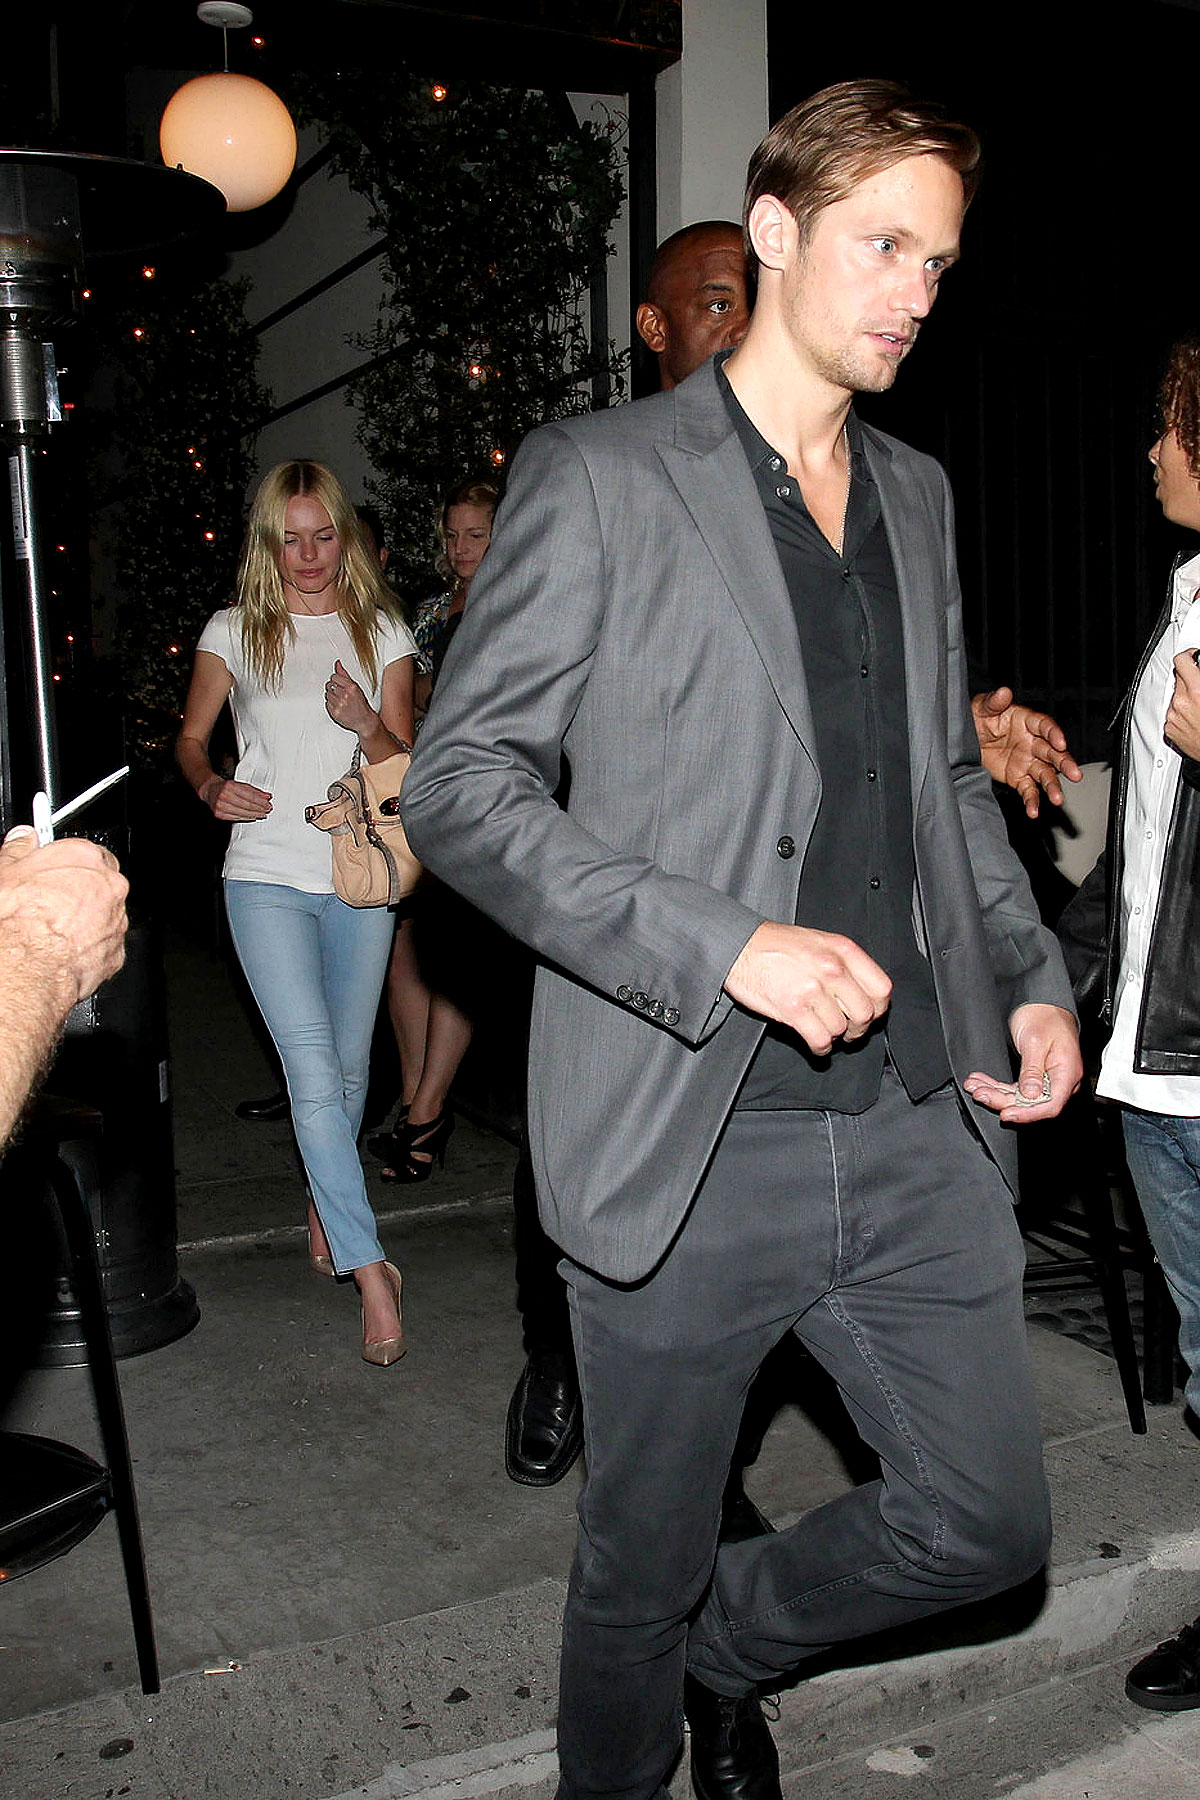 Alexander Skarsgard and Kate Bosworth's Stealth STK Date (PHOTOS)